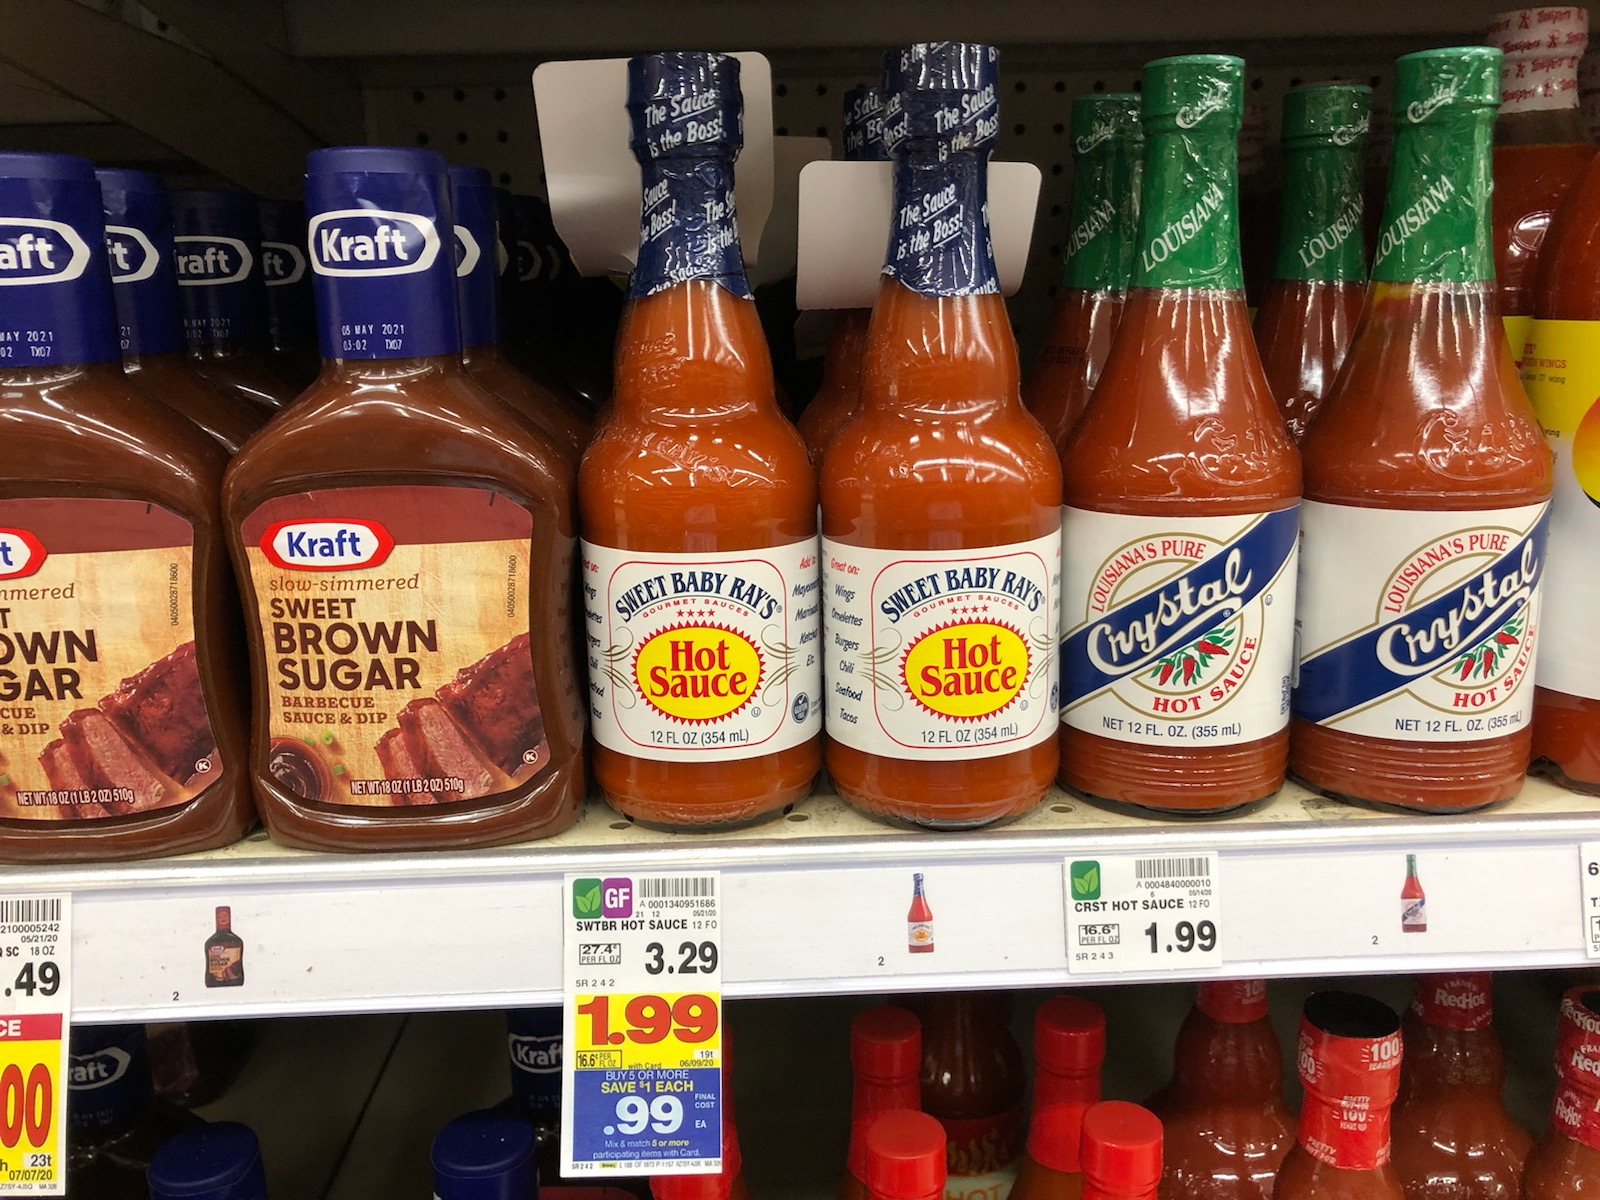 Sweet Baby Ray's Wing Or Hot Sauce As Low As FREE At Kroger 1